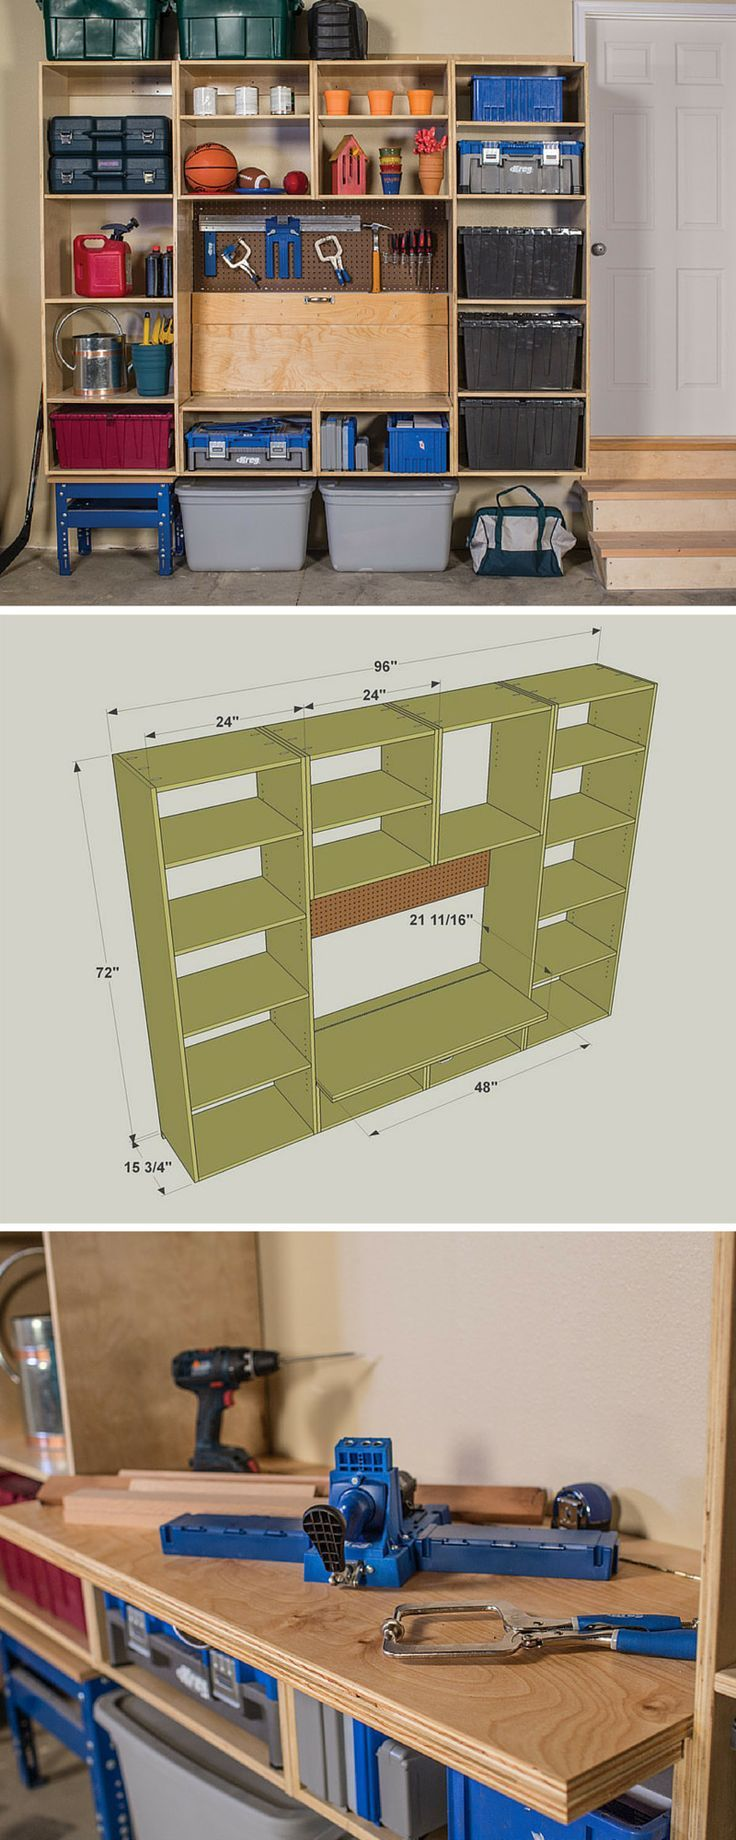 17 best ideas about workshop plans on pinterest workshop for Storage unit plans